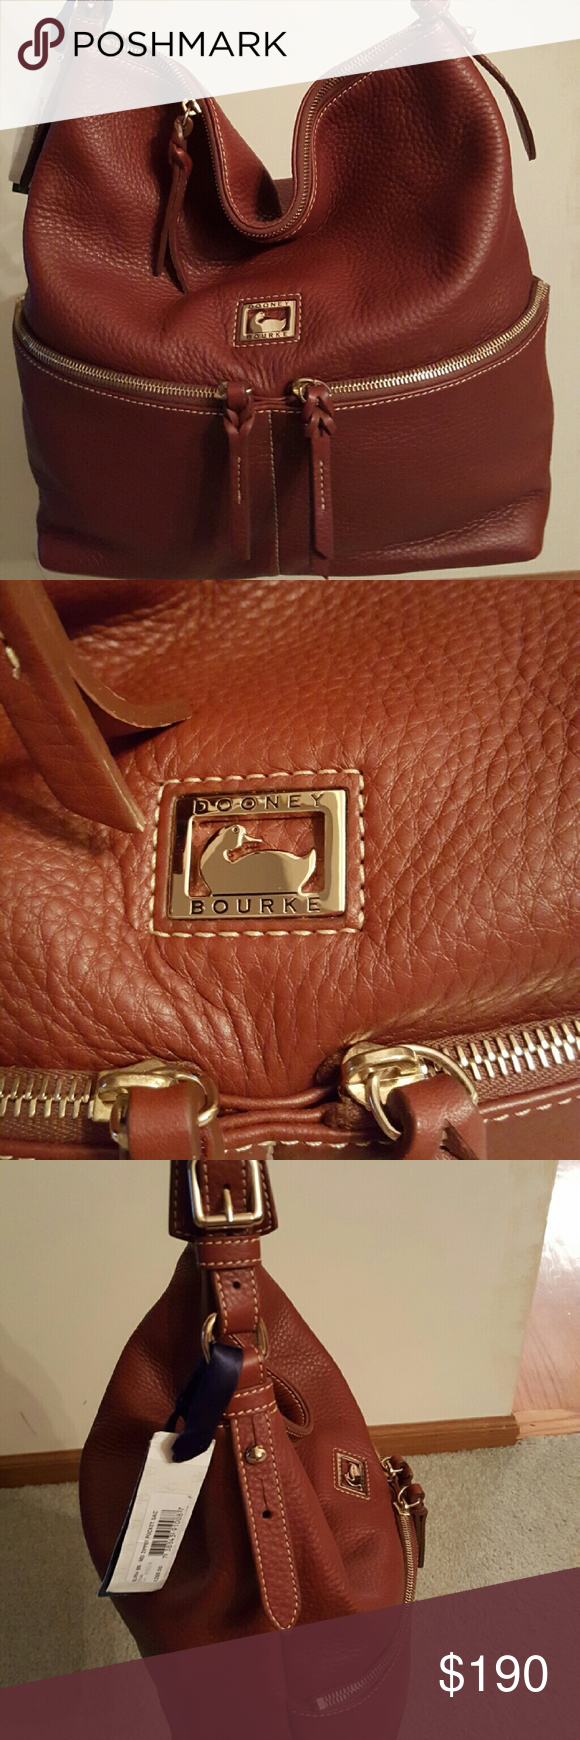 "Dooney & Bourke Brown leather Medium Zipper Pocket Sac H 9.5"" x W 5.75"" x L 12"" Two outside zip pockets. One inside zip pocket. Two inside pockets. Cell phone pocket. Inside key hook. Zipper closure. Strap drop length 10"". A true Dooney classic, Dillen leather is known for its soft, pebbled texture and exceptional durability. This hobo is one of the original Dooney & Bourke handbags. it's simple and sporty, perfect for when you're out and about the town. Dooney & Bourke Bags Hobos"